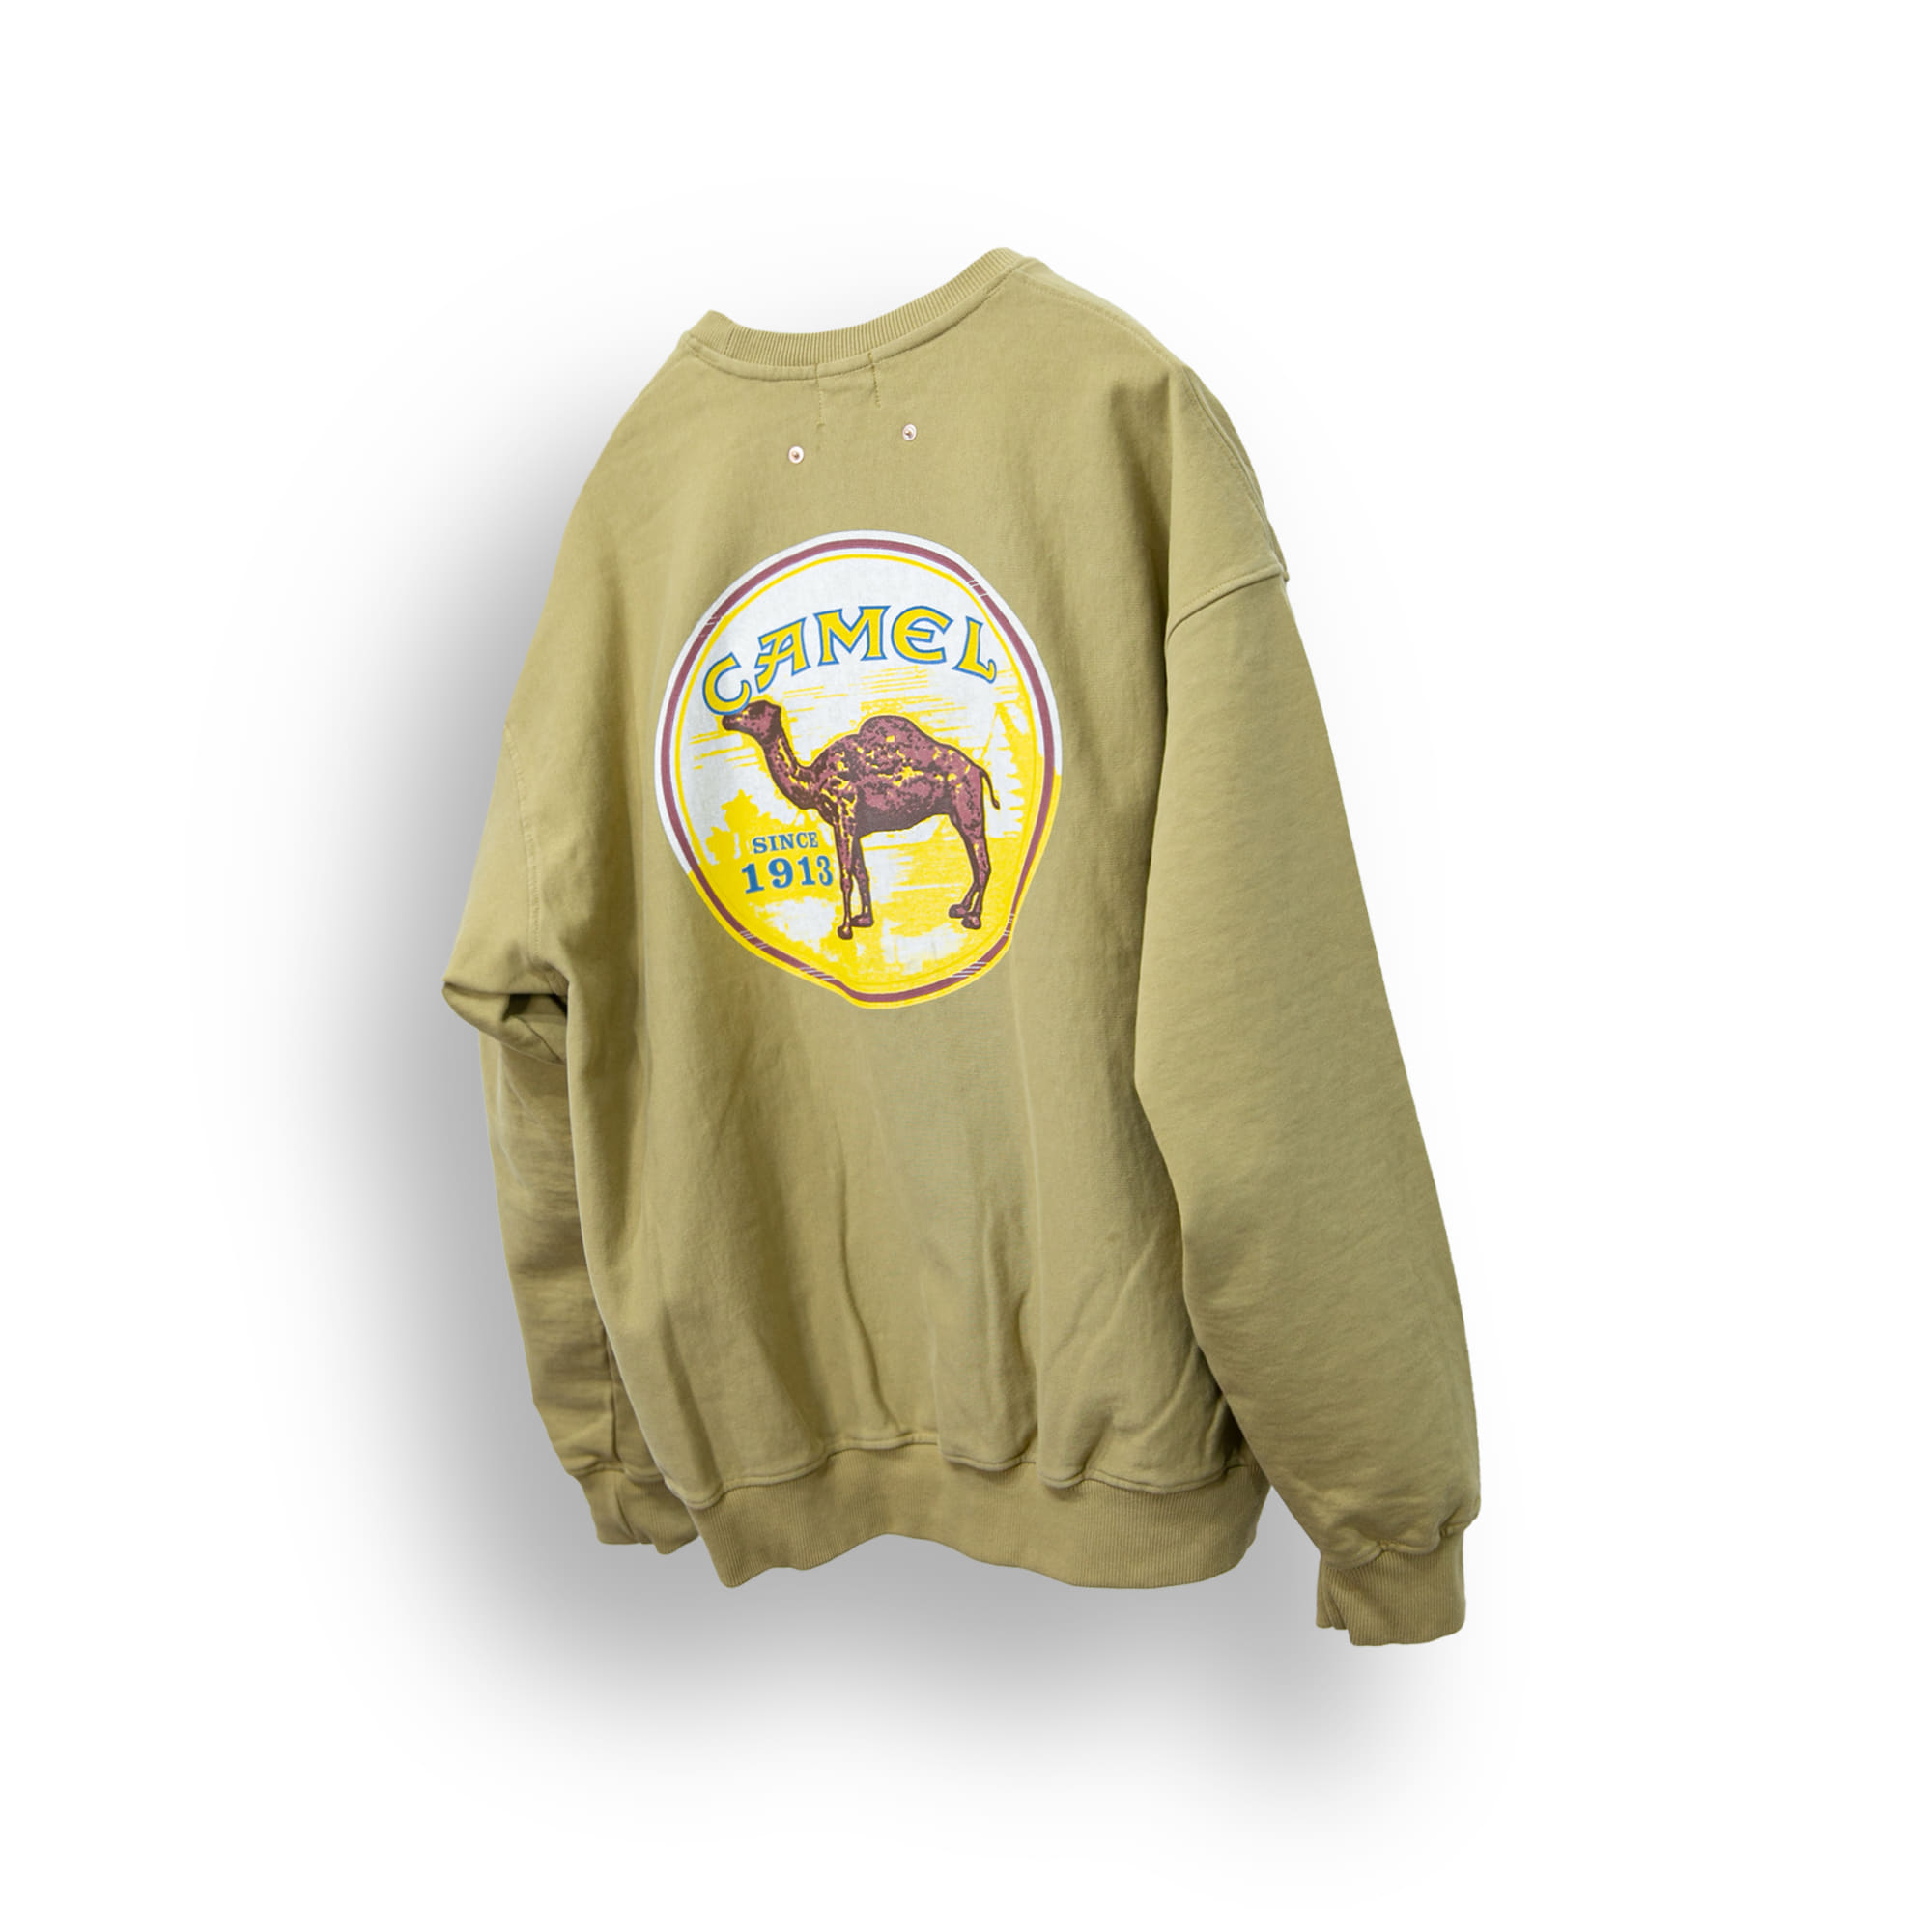 Washed Printing Over Sweat Shirt - Mustard